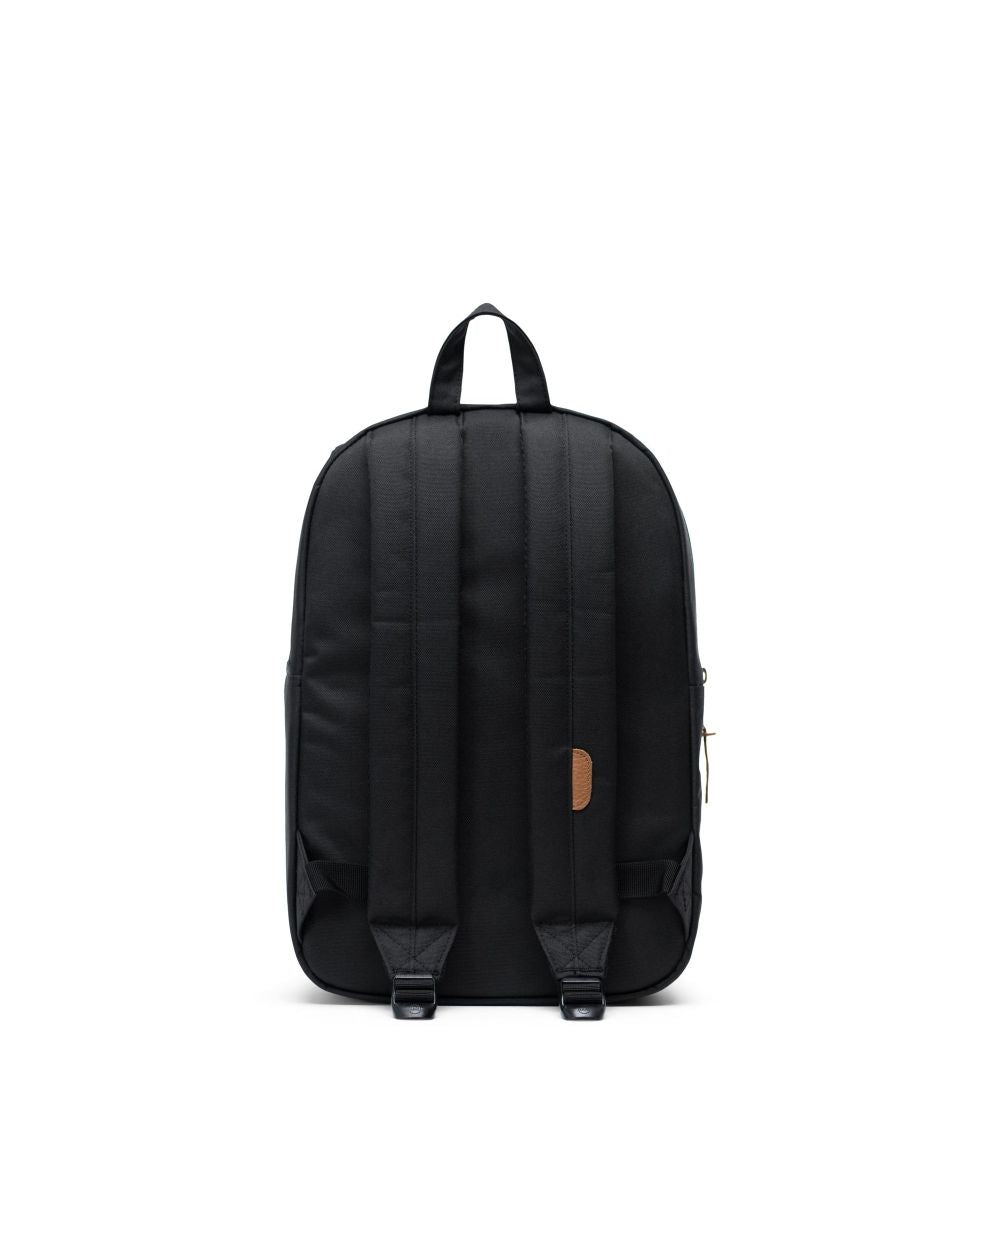 SETTLEMENT BACKPACK MID-VOLUME - BLACK